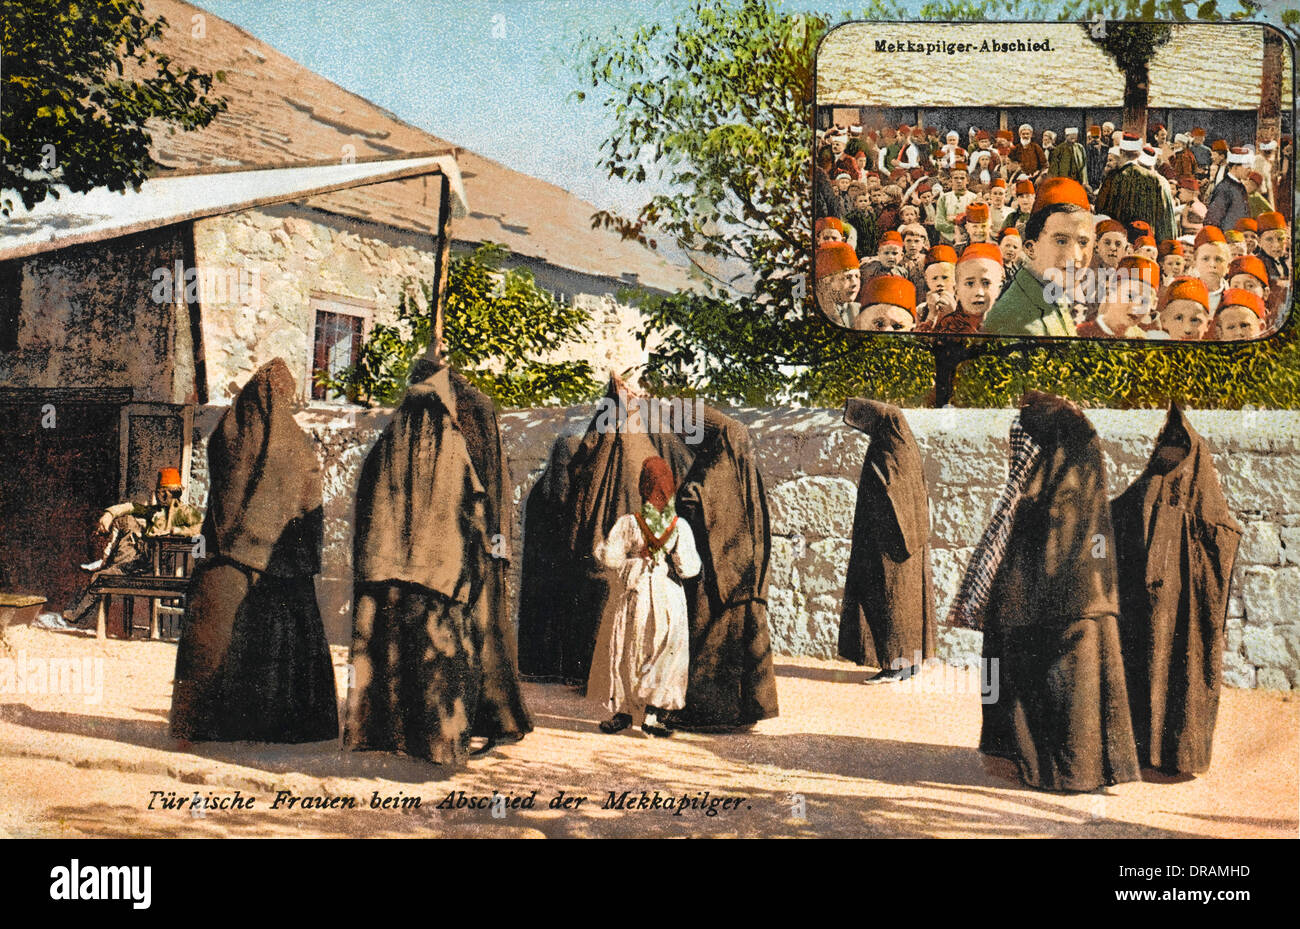 Women departing on Pilgrimage - Stock Image